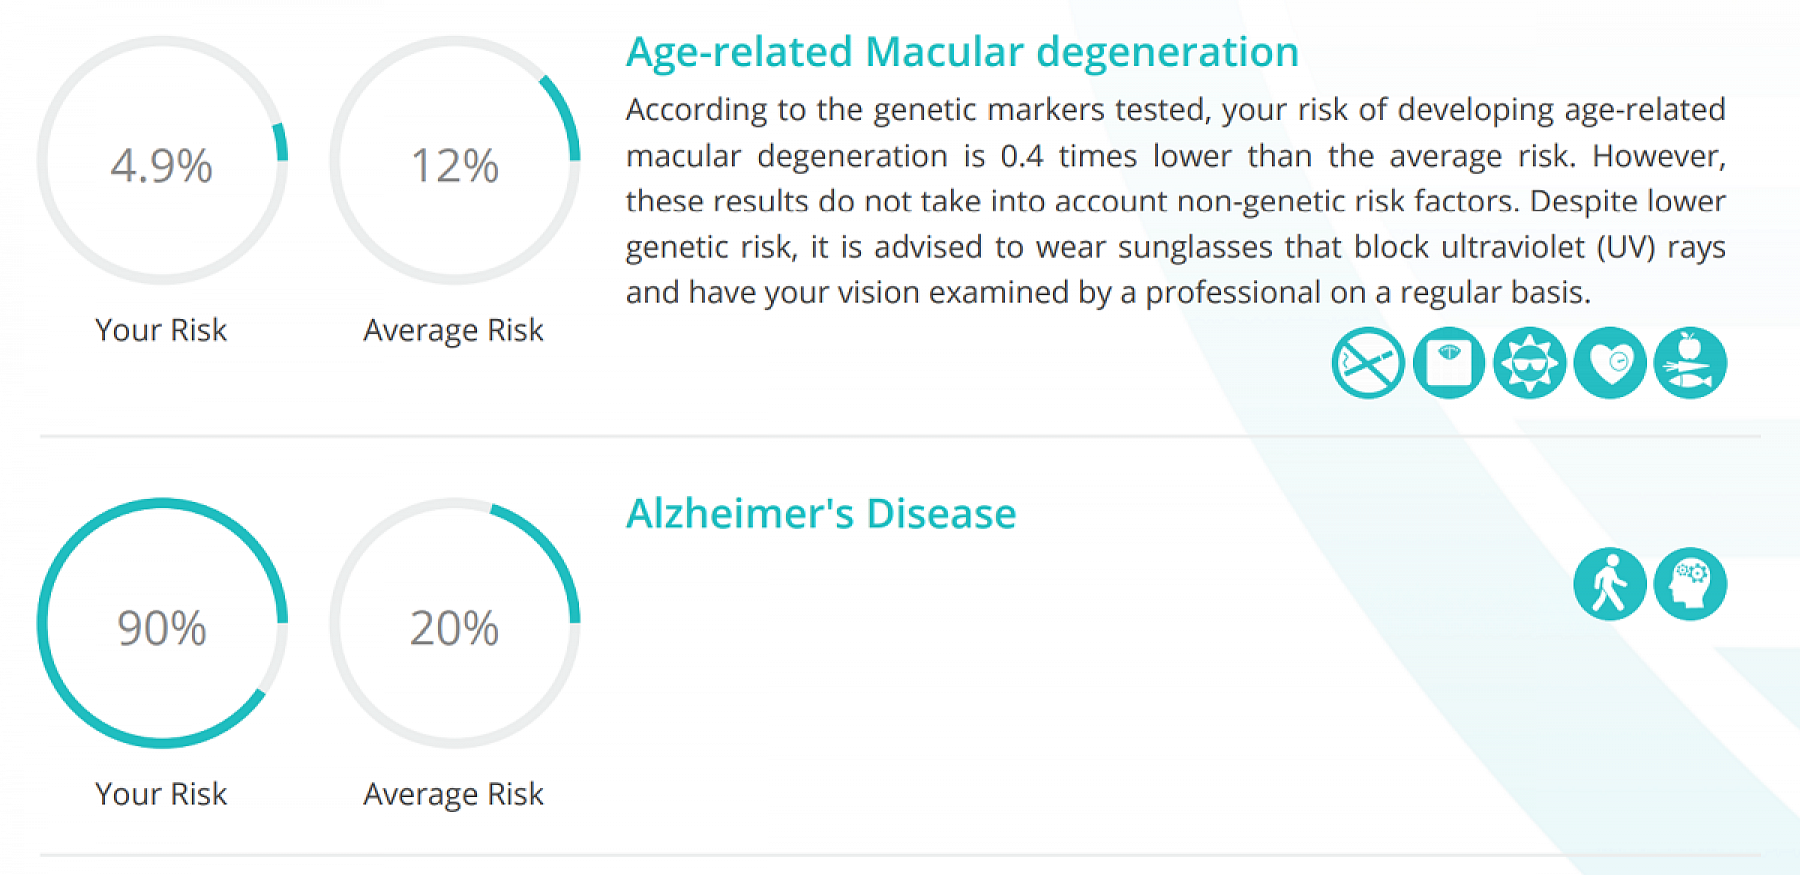 My results for age-related macular degeneration and Alzheimer's disease.